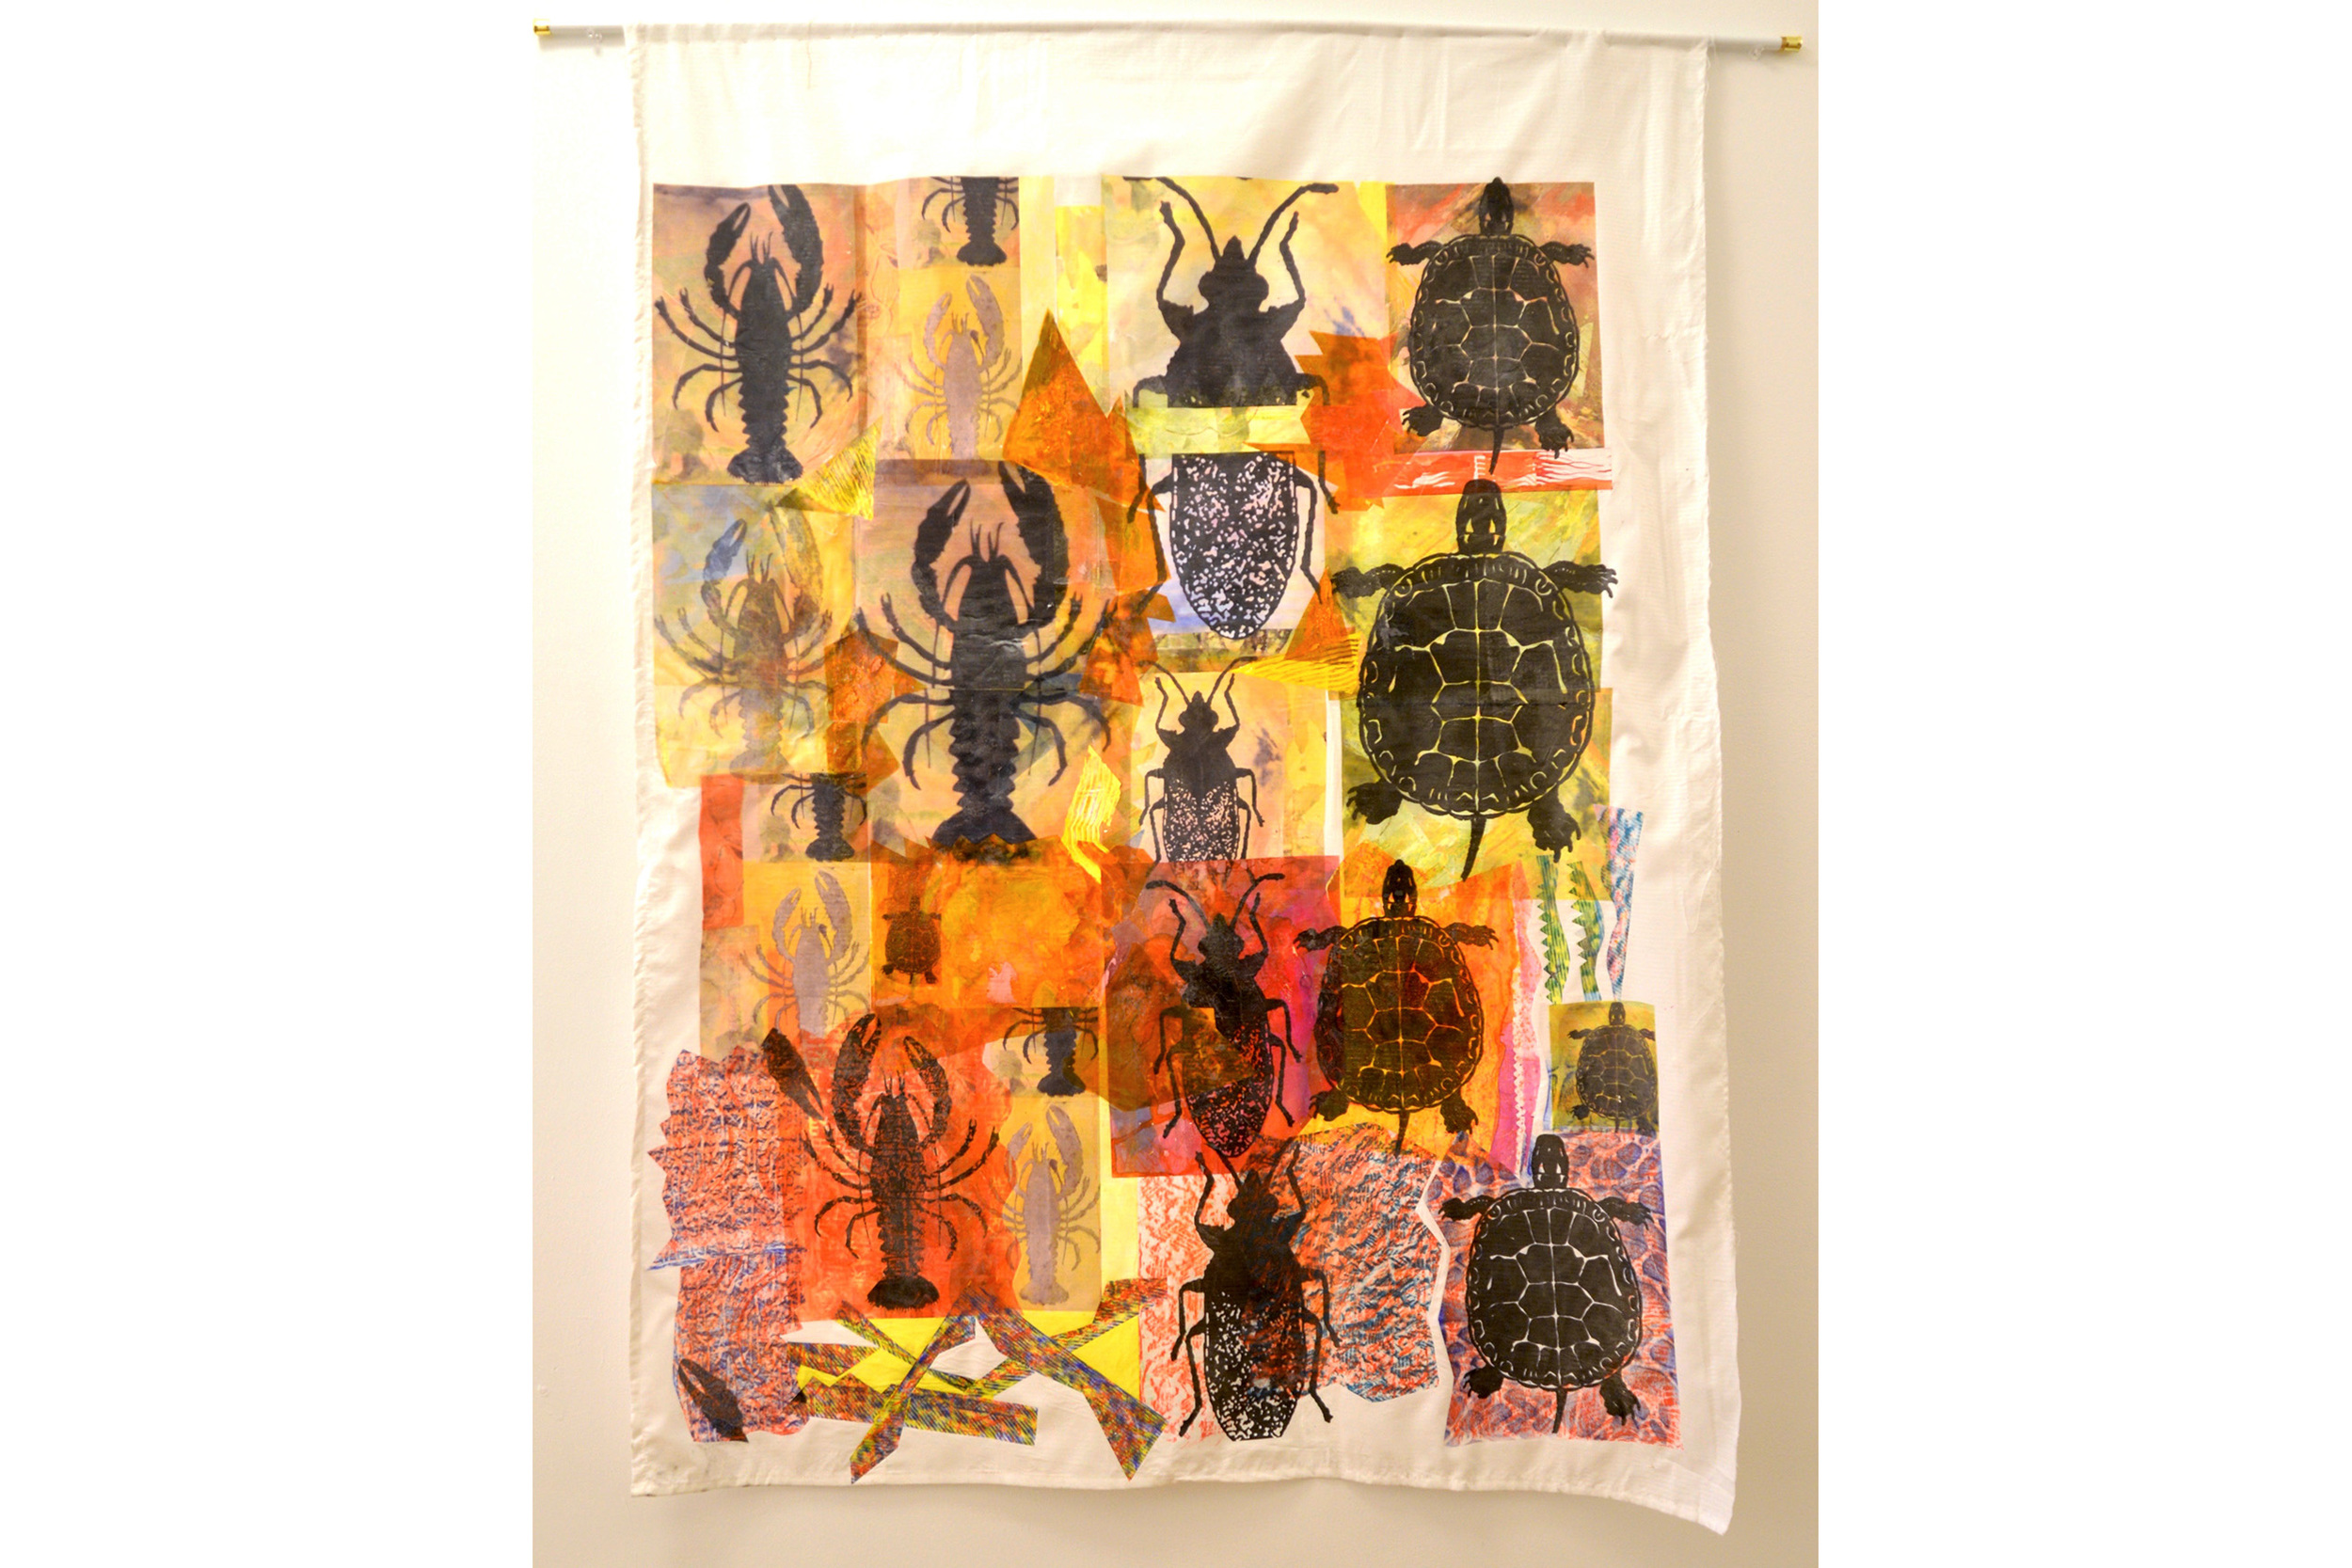 "Cari Rosmarin Bug, Lobster and Turtle Mixed media on cloth 51"" x 38"", 2016"